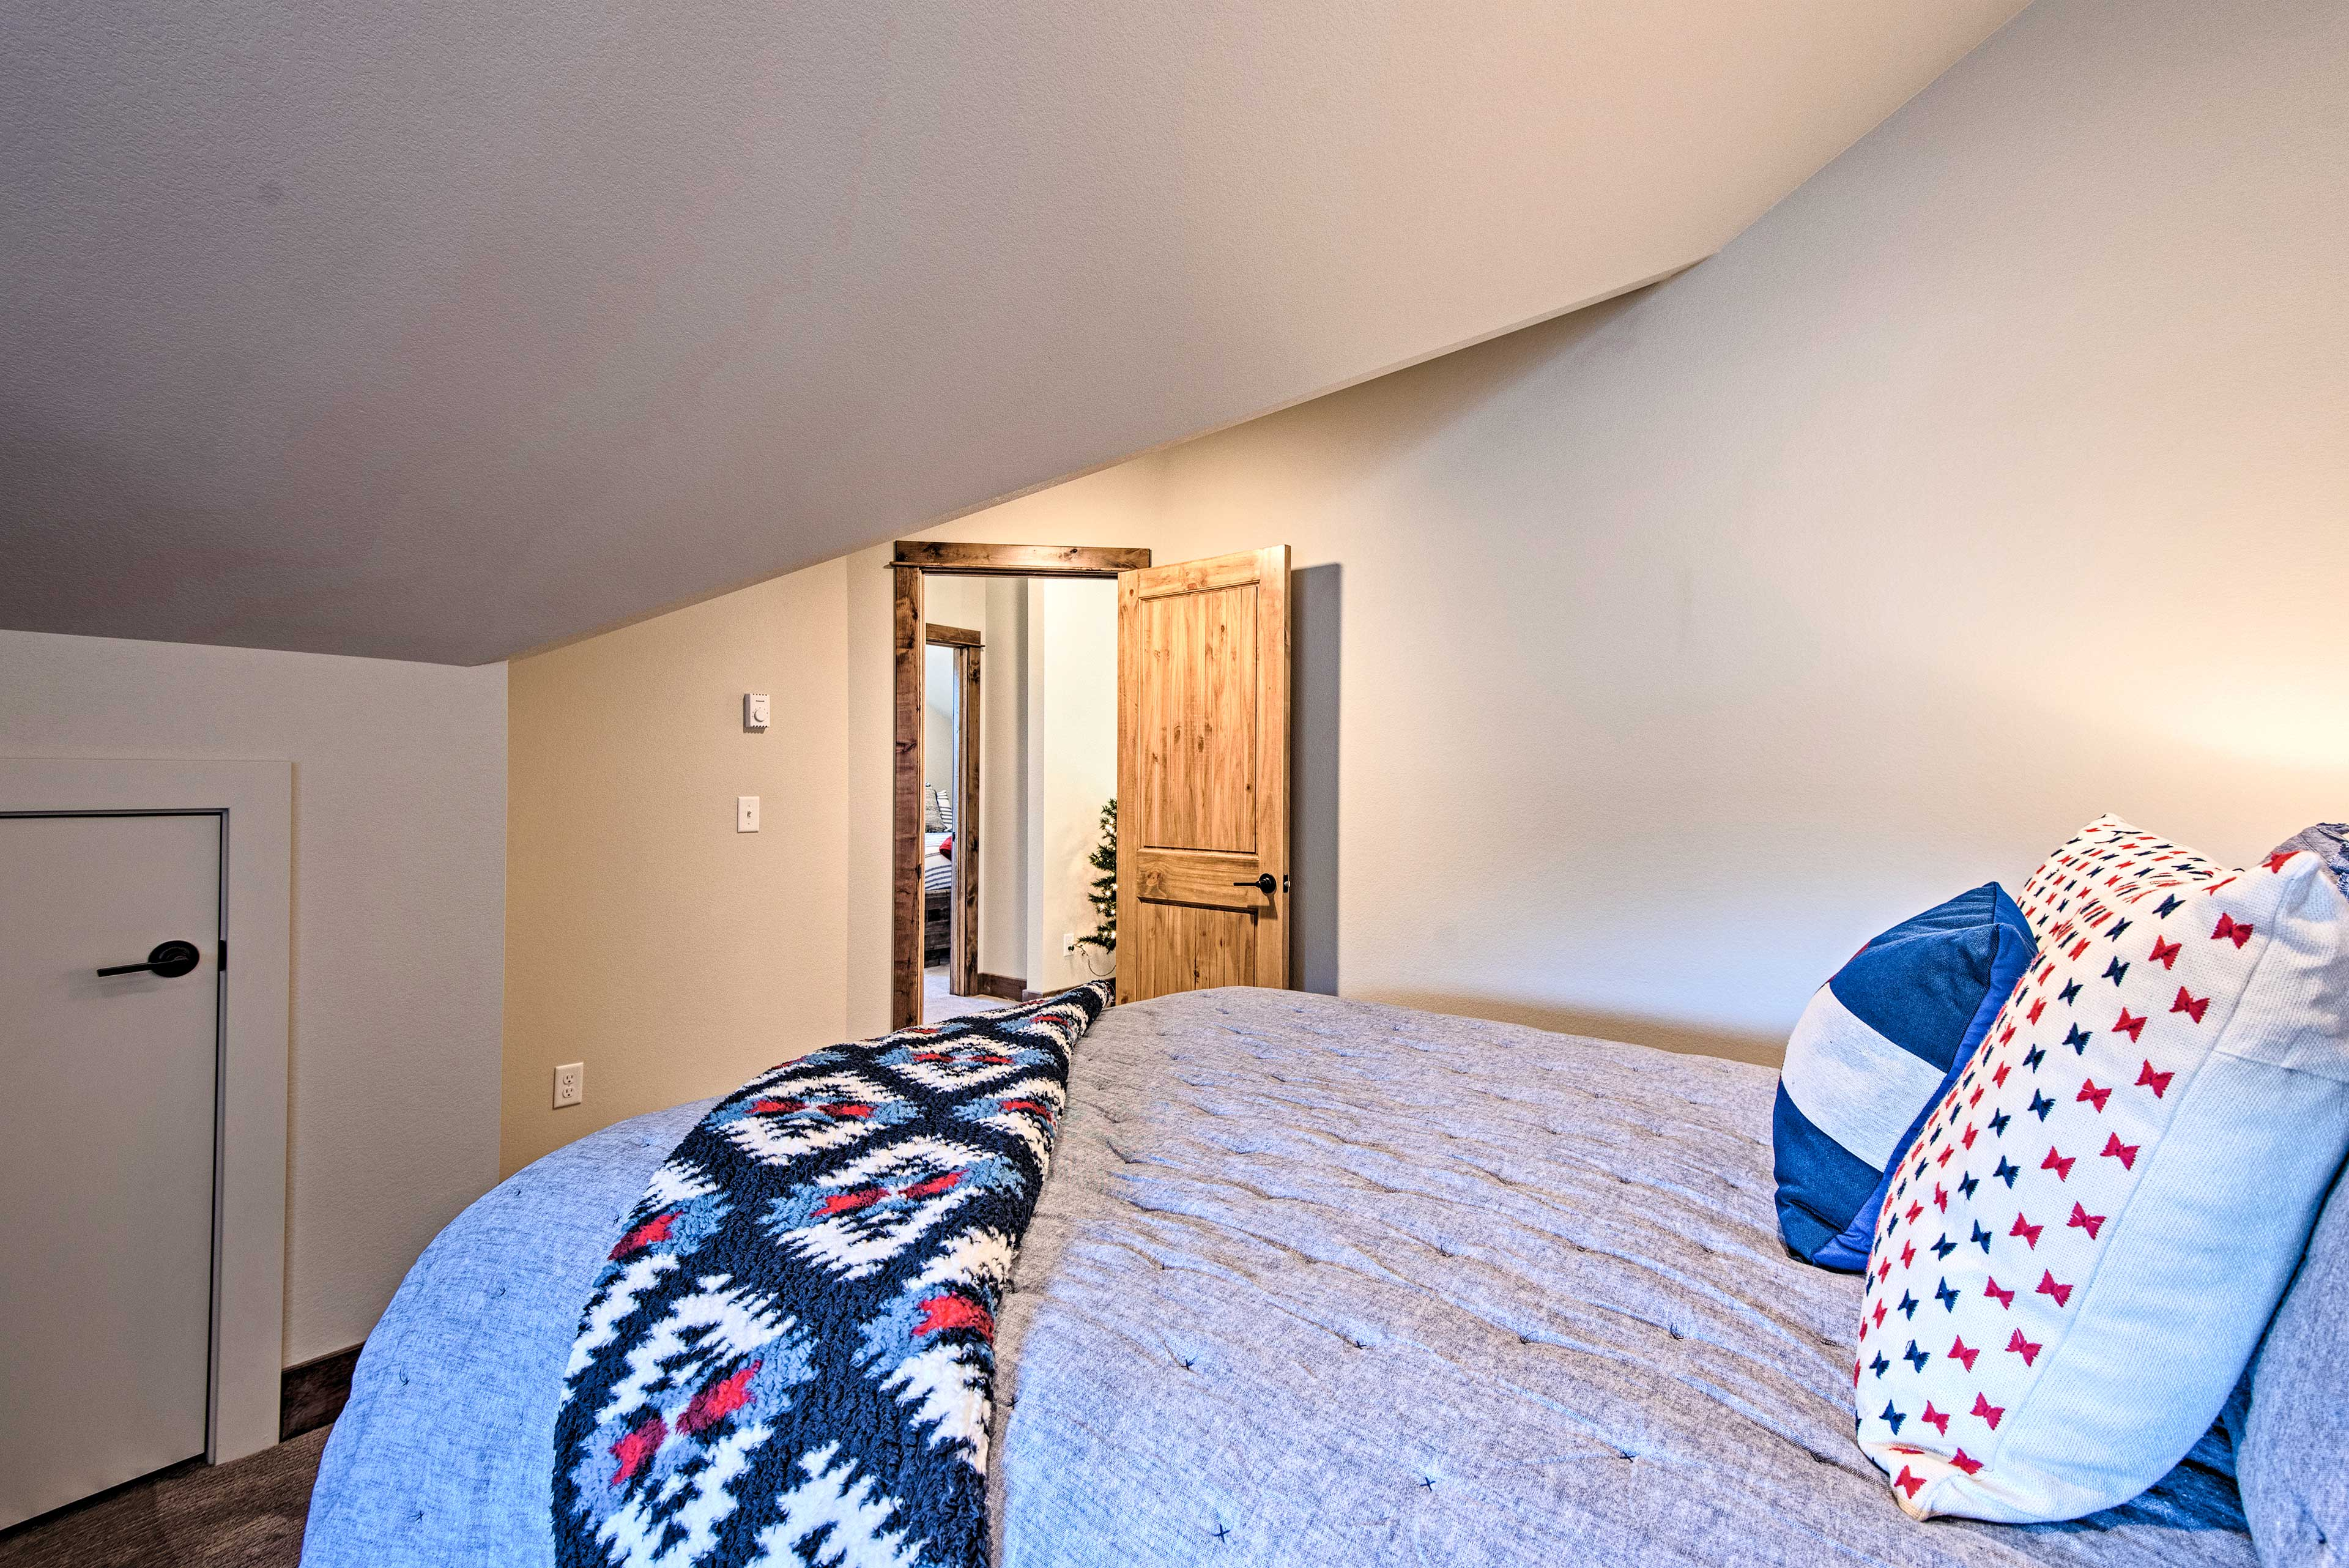 The room features a queen bed and futon.